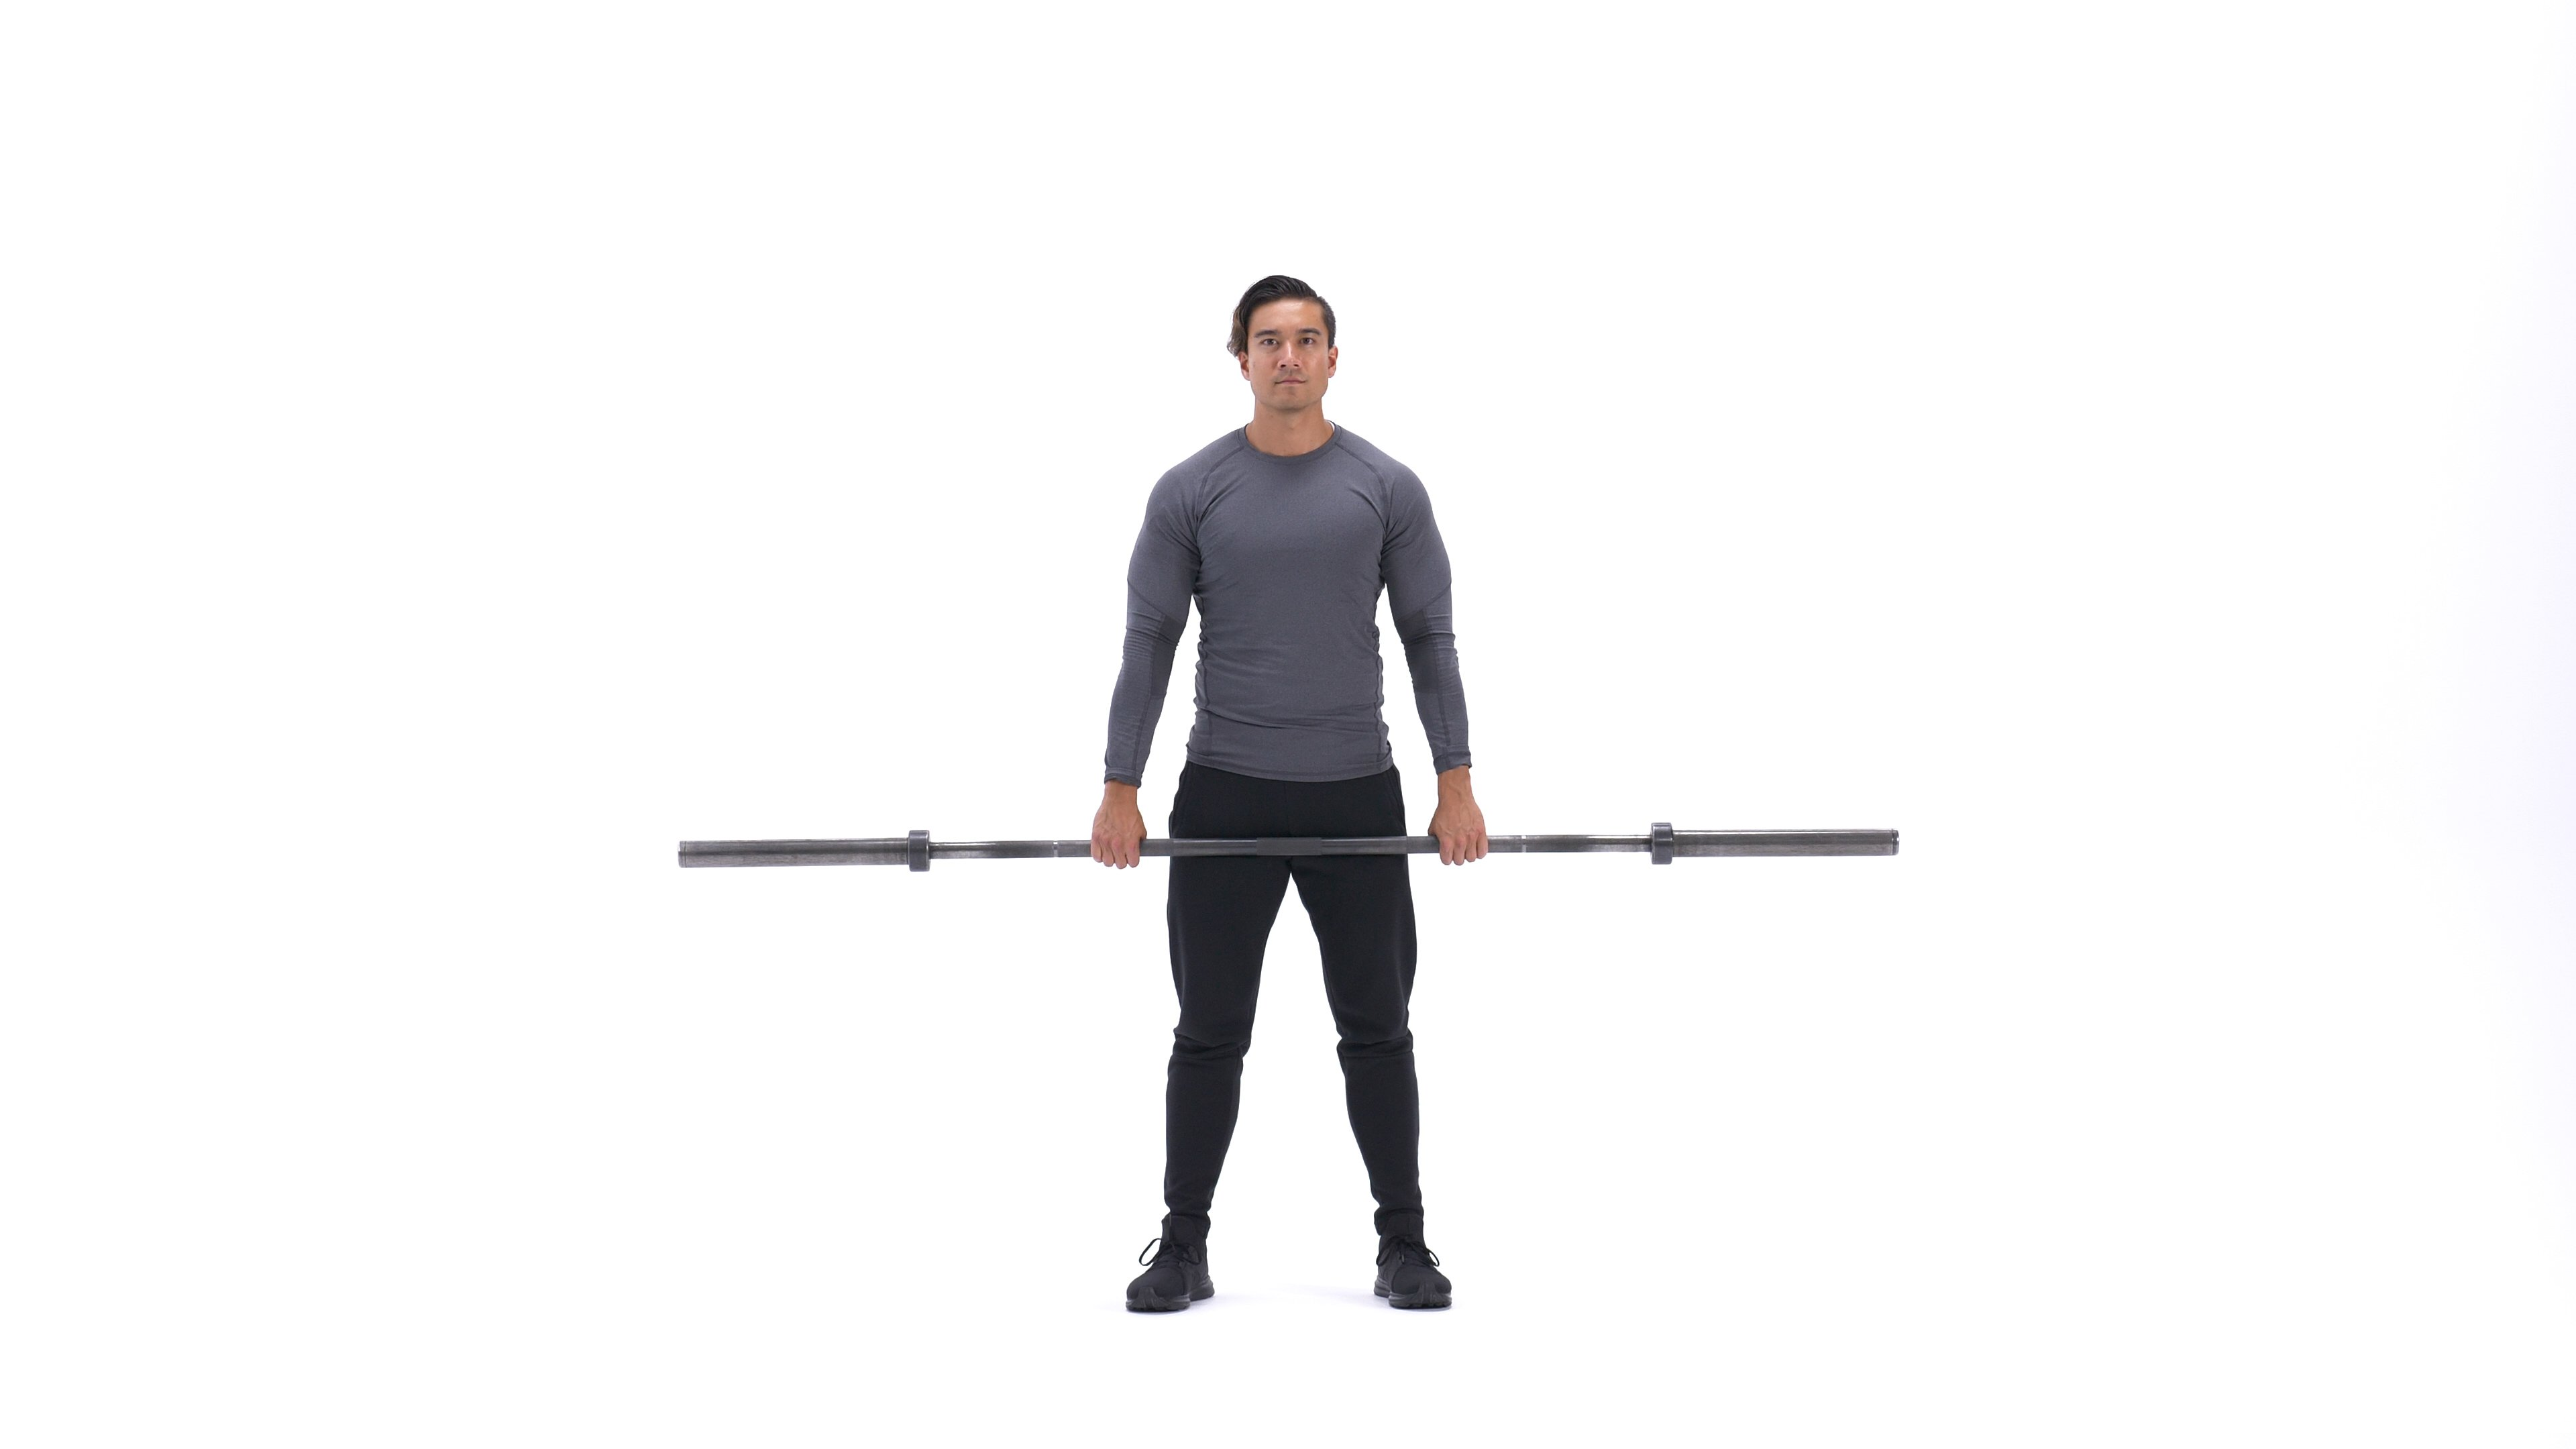 Barbell shrug image